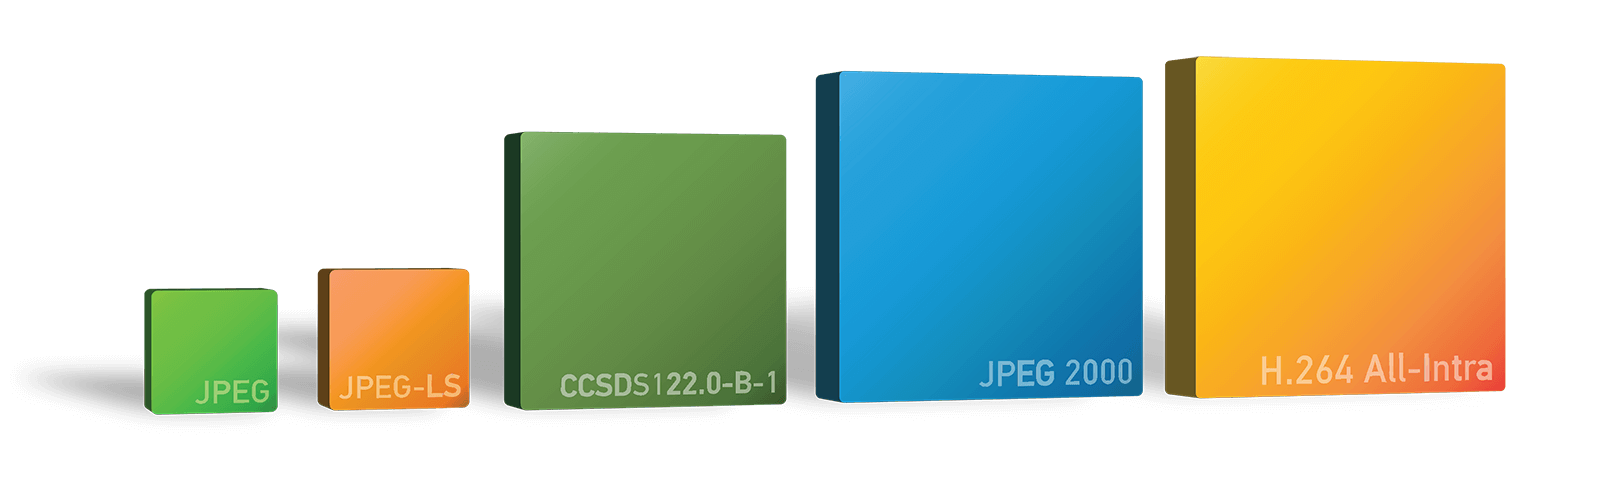 JPEG-LS-E | Lossless & Near-Lossless JPEG-LS Encoder | 500x1600